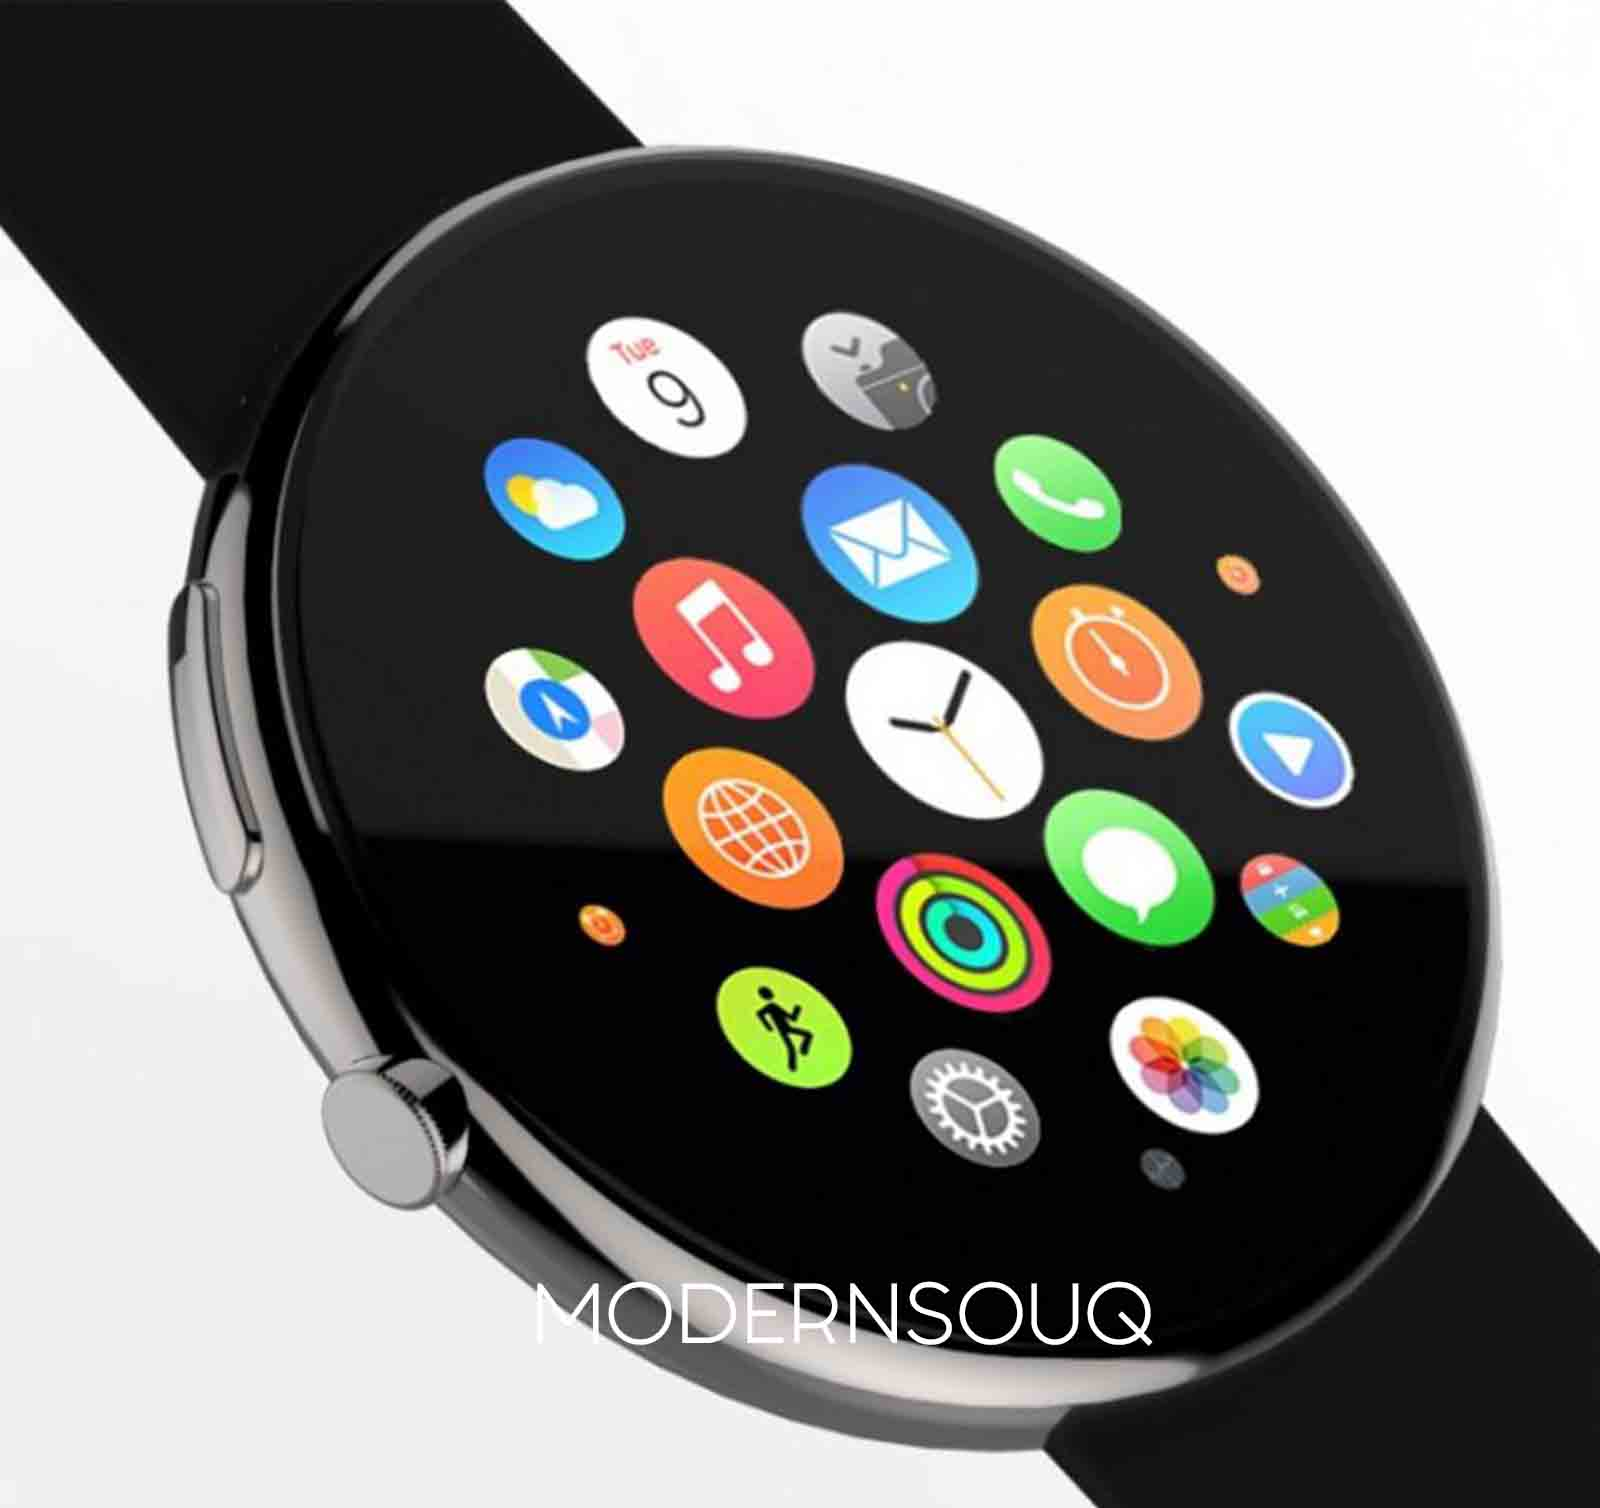 59b6b45ea ساعة أبل Apple Watch - مودرن سوق